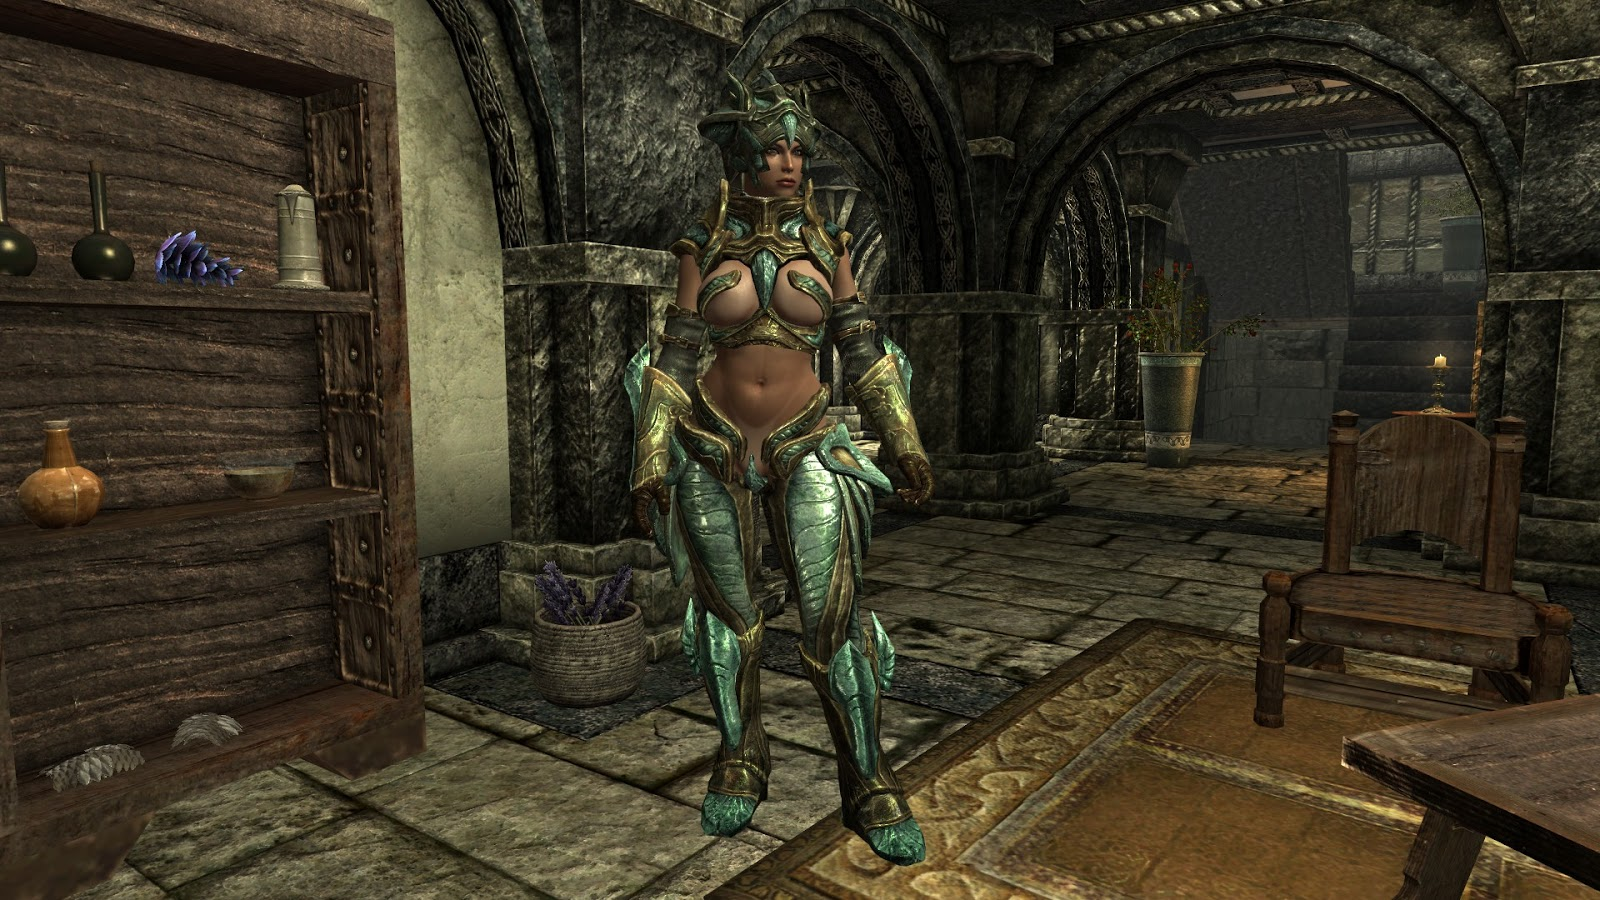 skyrim how to get follower to wear armor